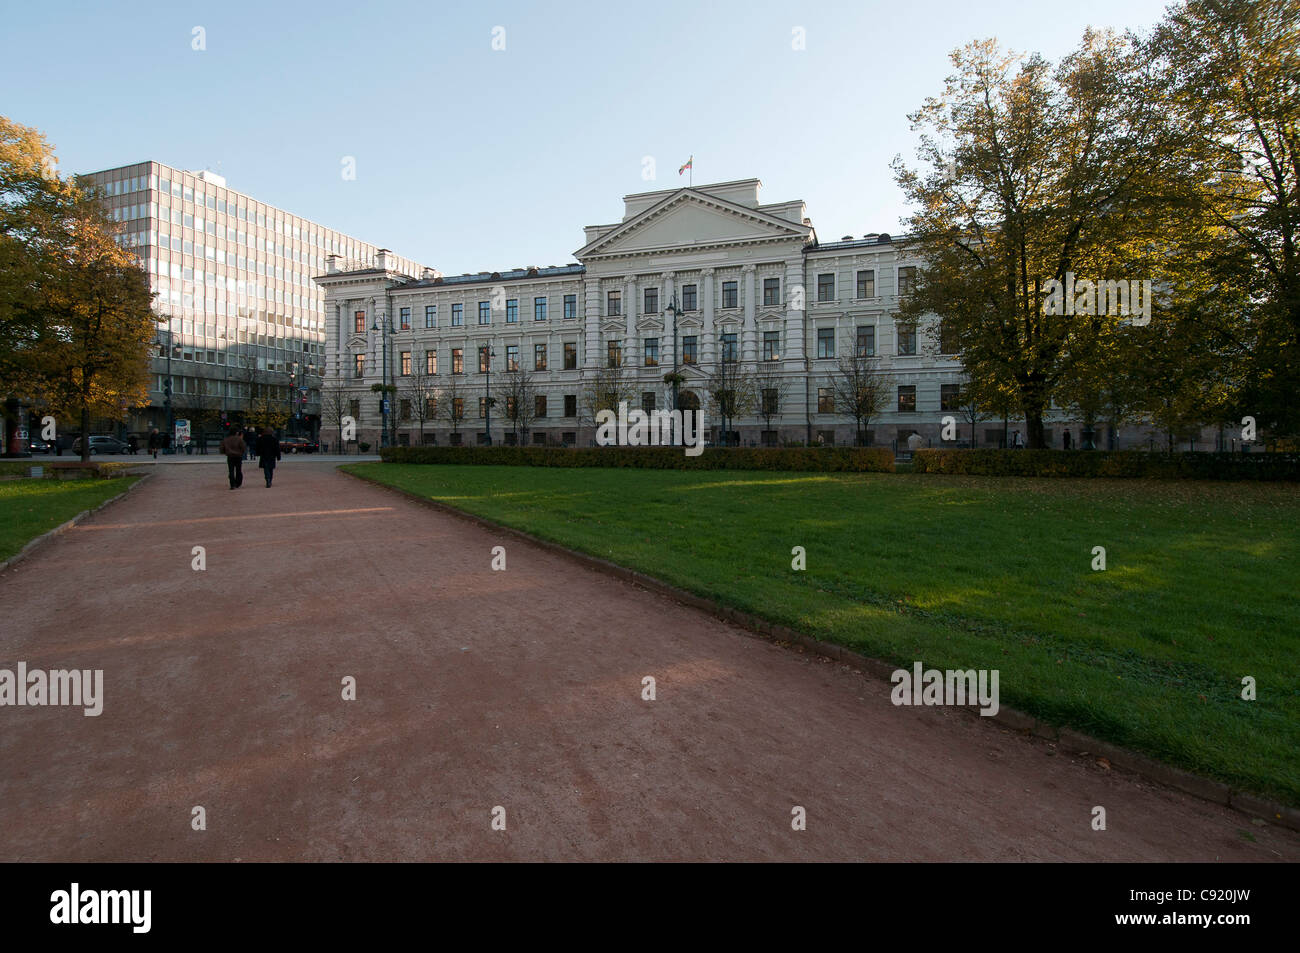 The Main Courthouse in Vilnius, Lithuania, formerly headquarters of the KGB. - Stock Image